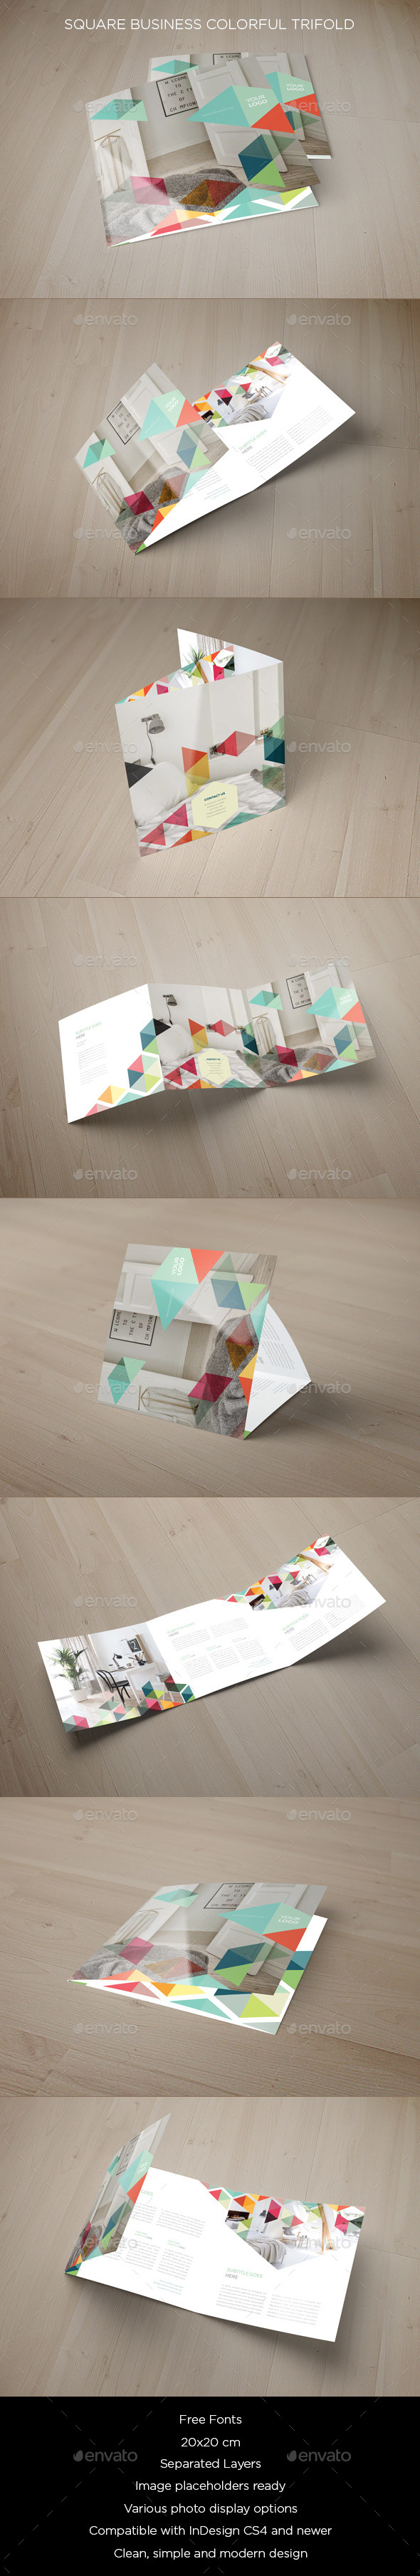 Square Business Colorful Trifold - Brochures Print Templates